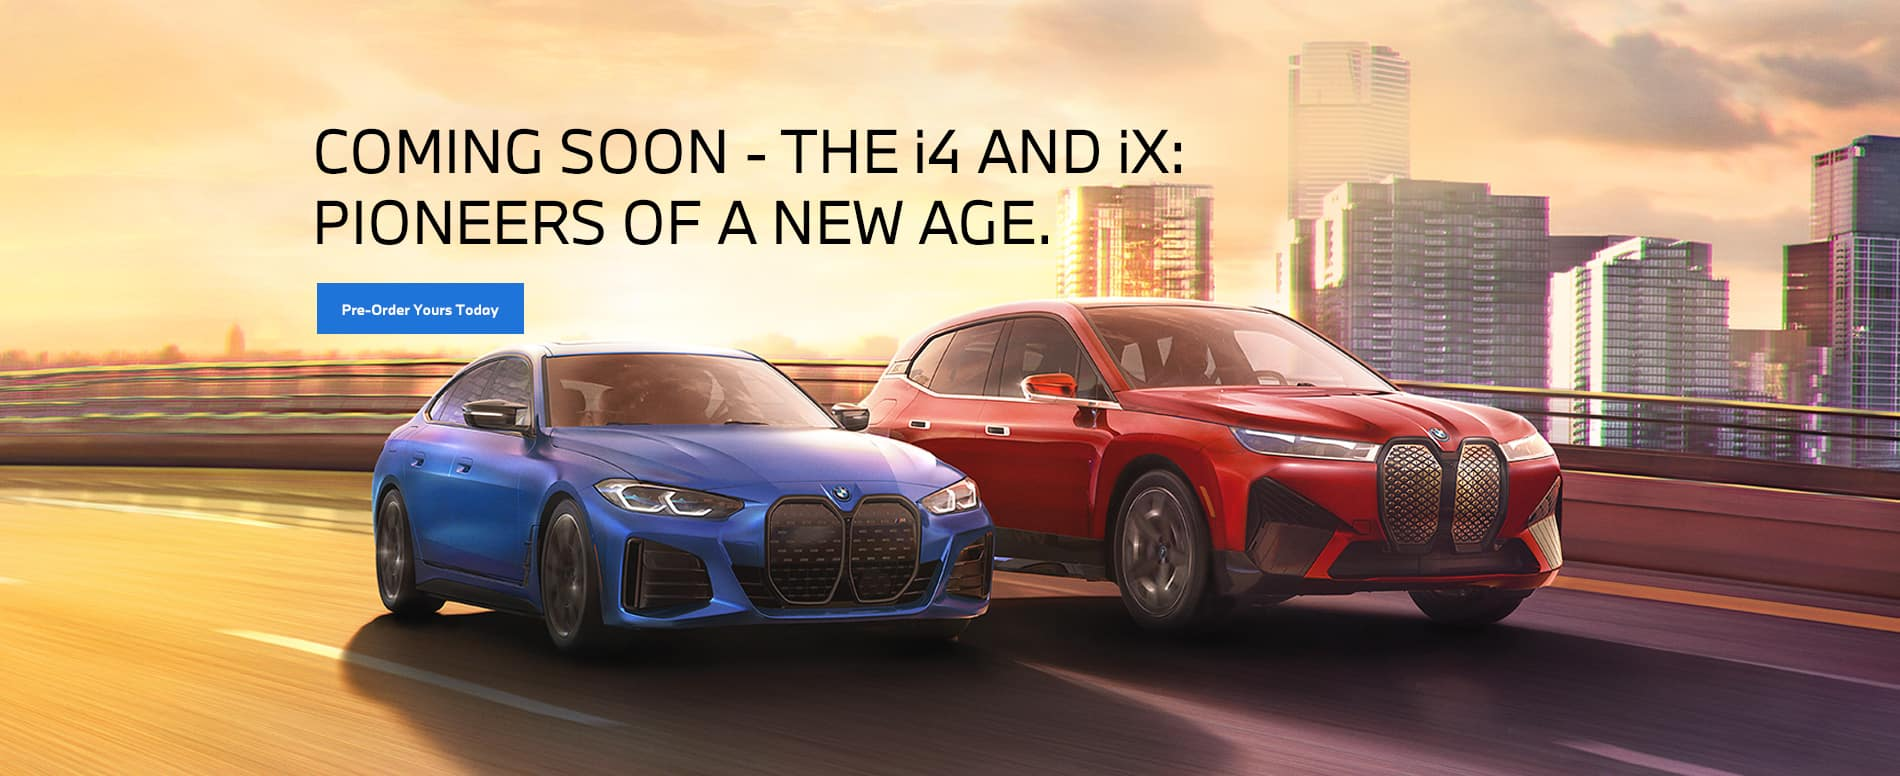 BMW i4 and BMW iX - Pioneers of a new age